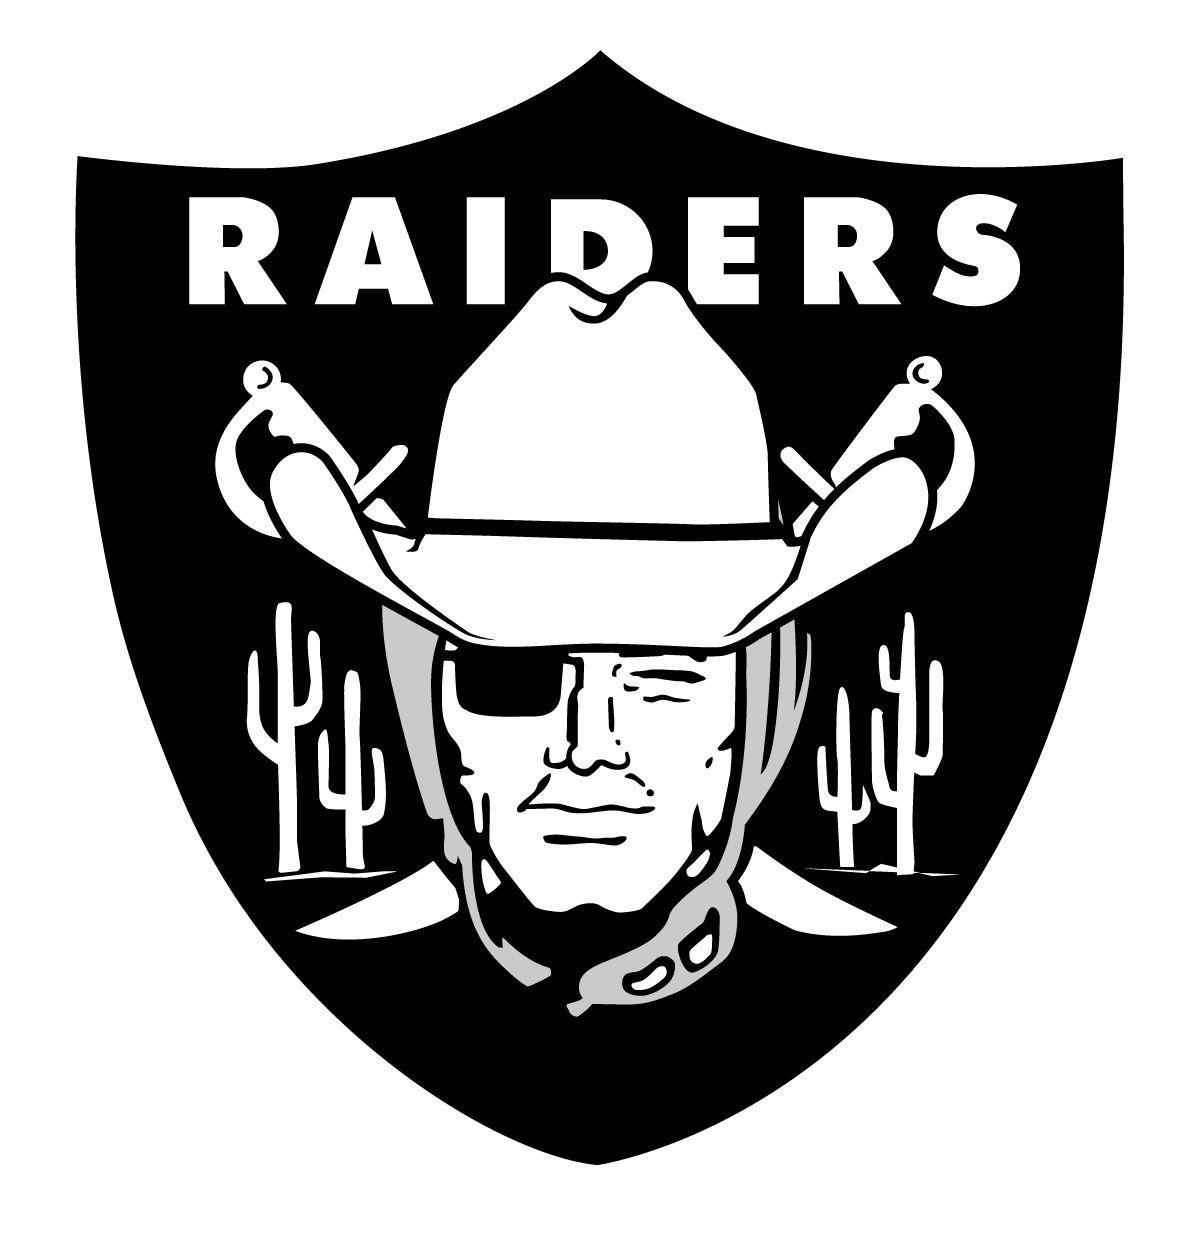 Tucson Raiders?